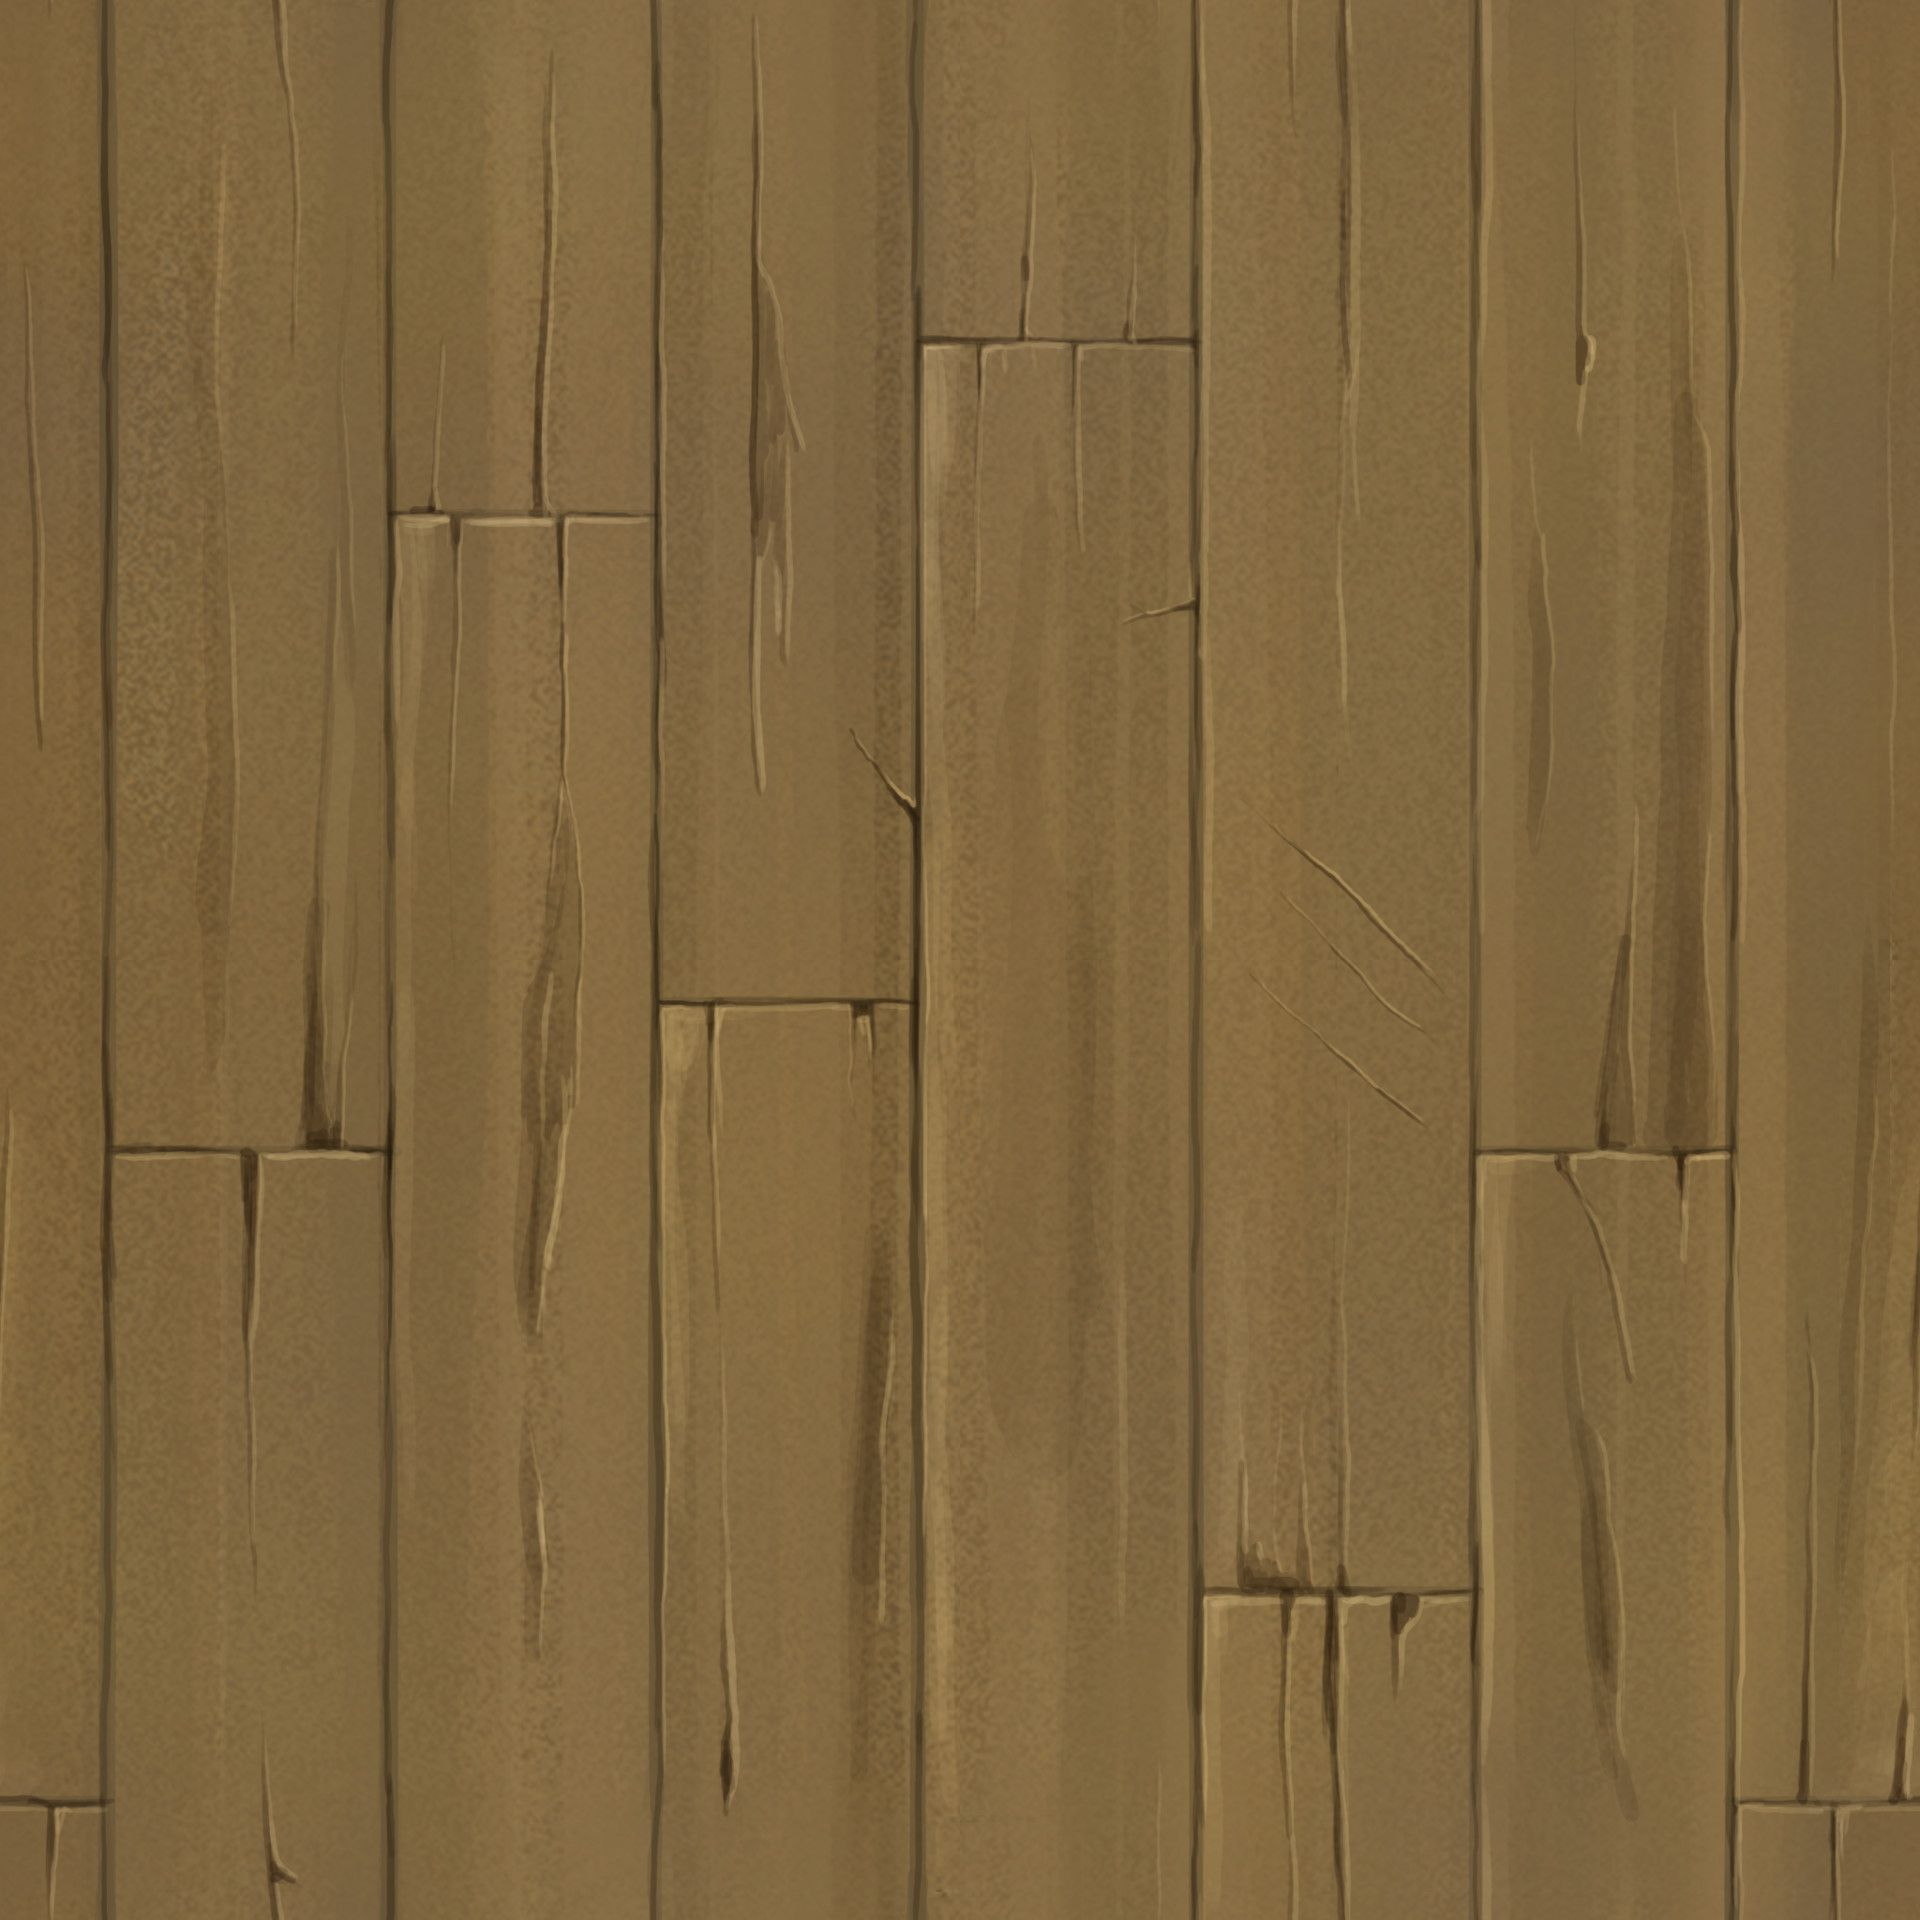 2d252e477 ArtStation - Free hand painted wood planks, Monopoly Guy | Texture